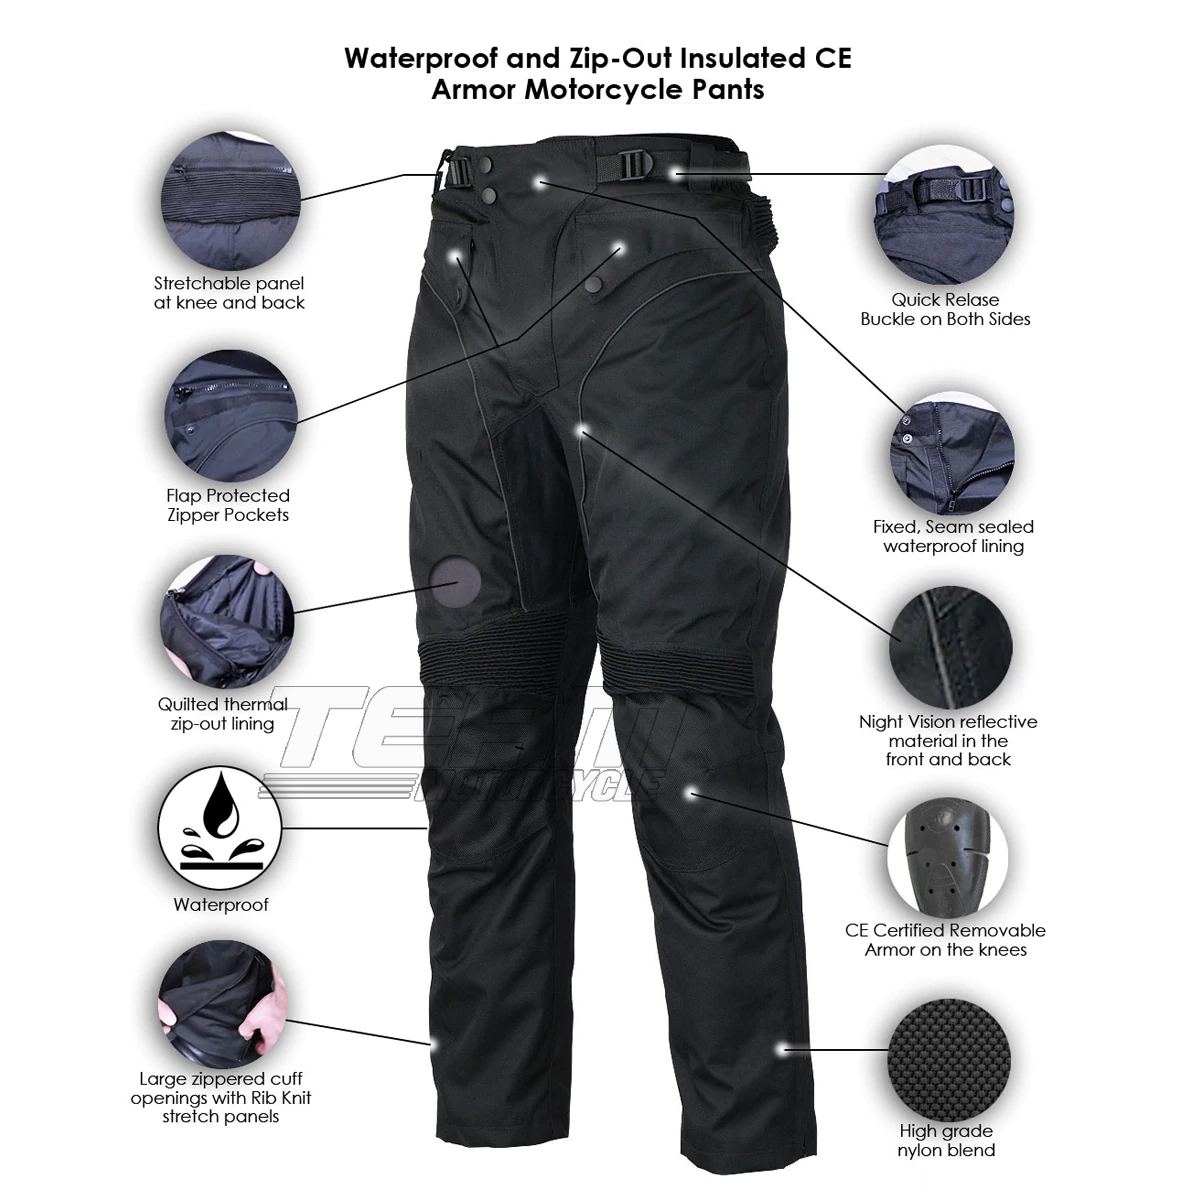 waterproof-and-zip-out-insulated-ce-armor-motorcycle-pants-infographics.jpg